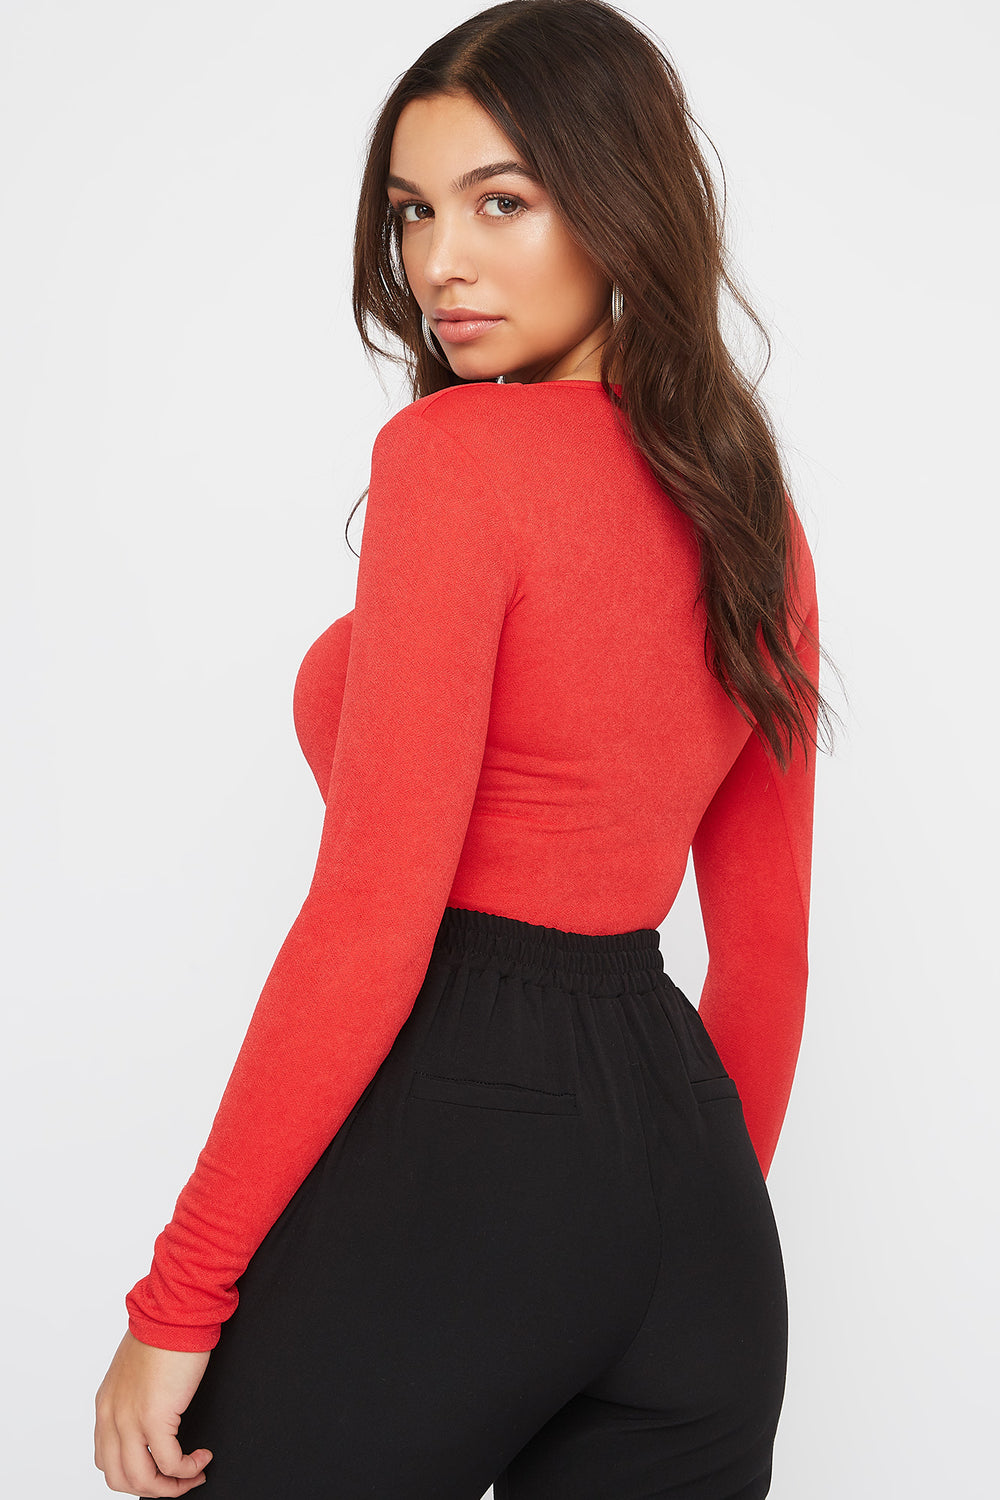 Square Neck Hook-and-Eye Bodysuit Red